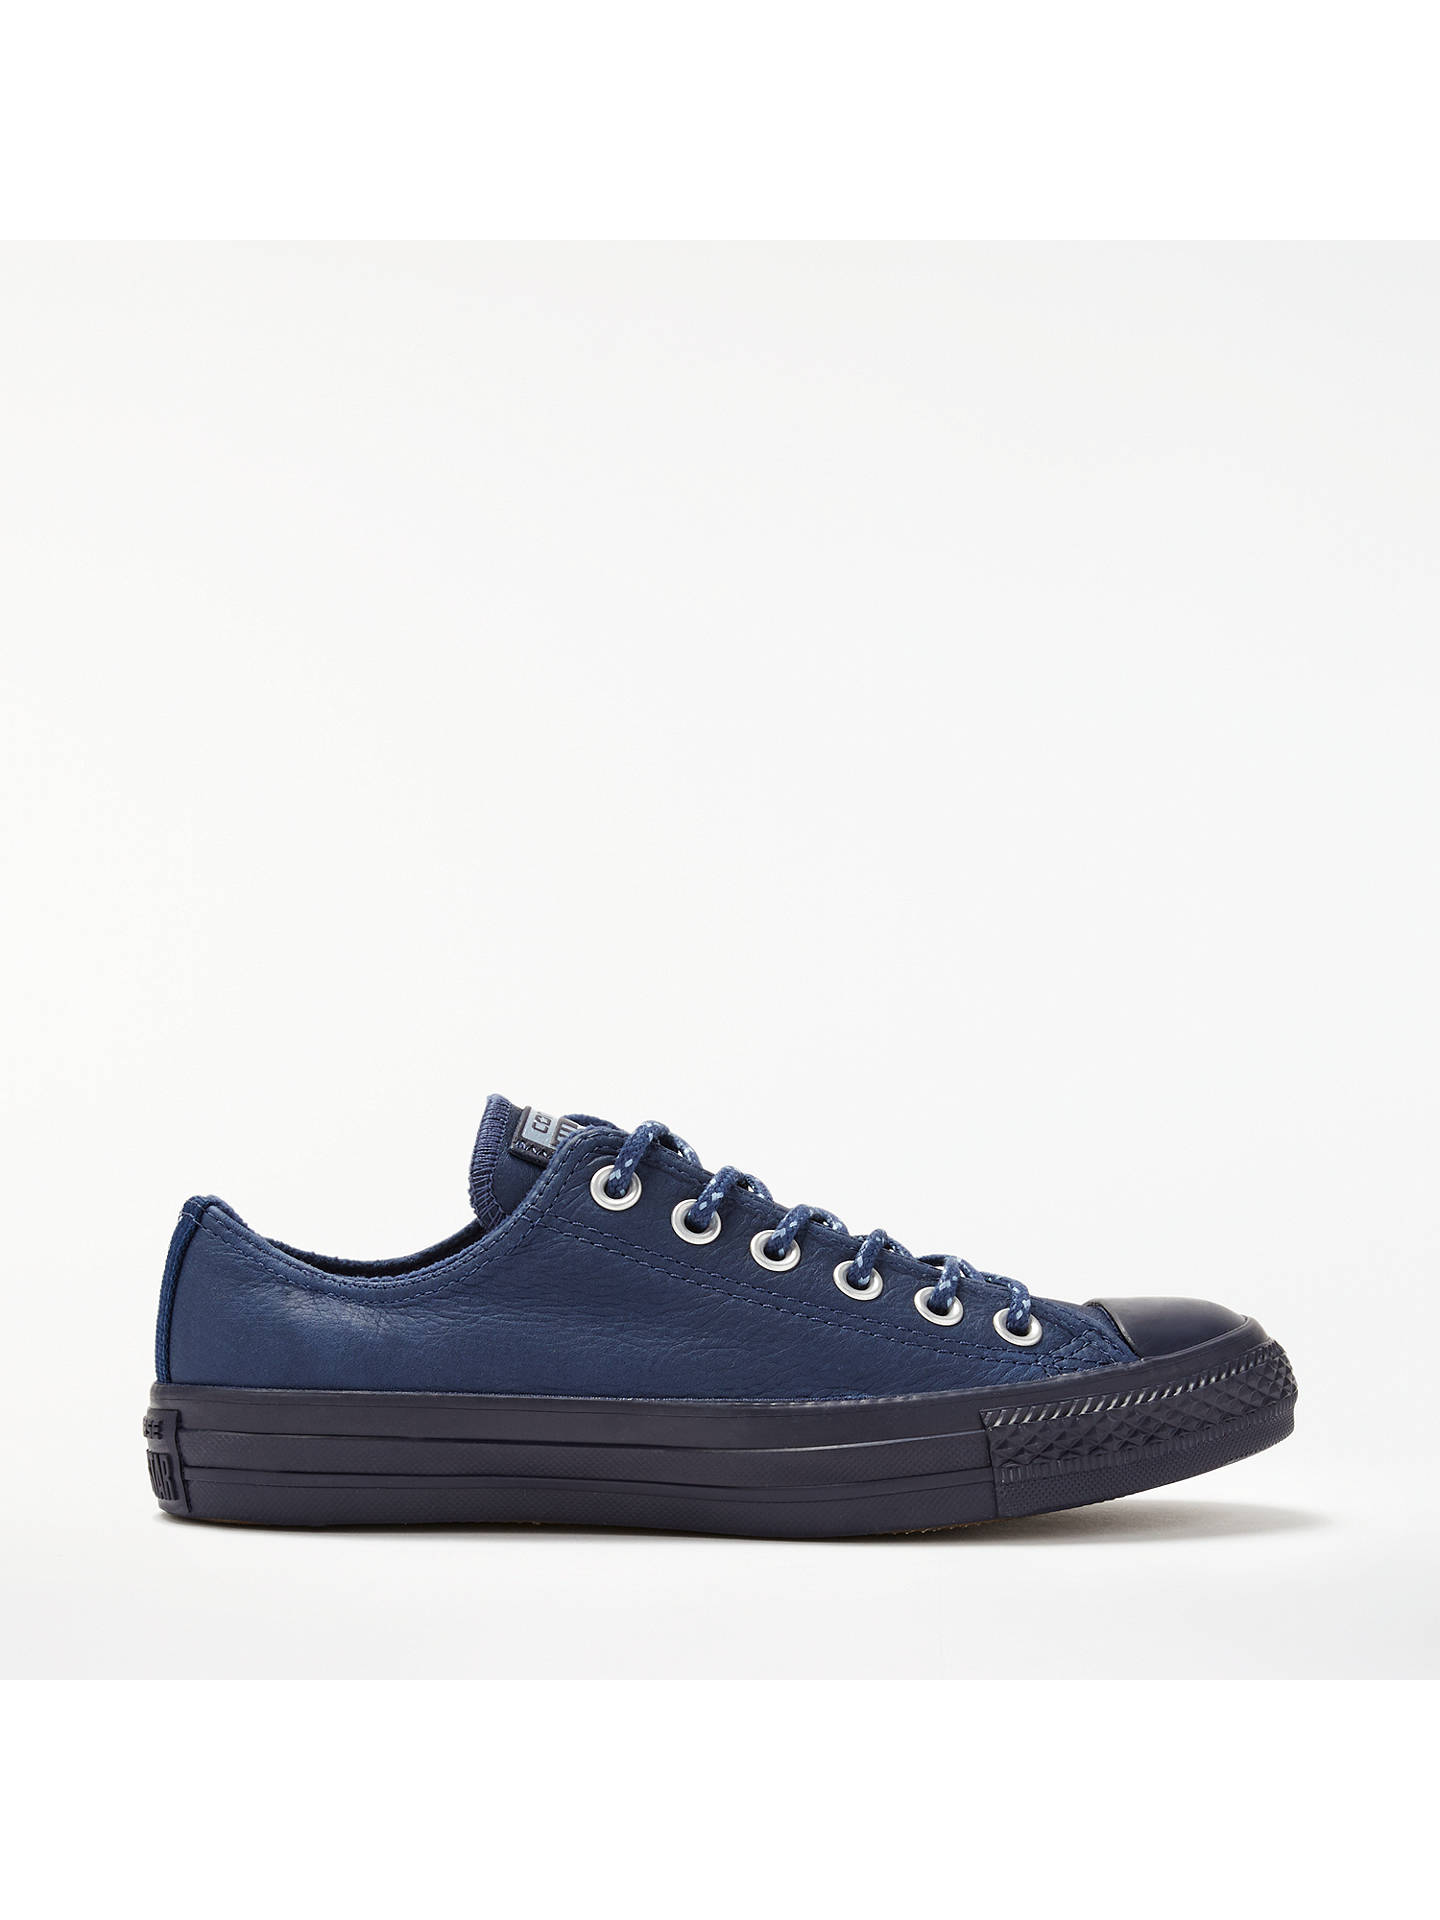 BuyConverse Chuck Taylor All Star Ox Leather Trainers, Navy Leather, 5 Online at johnlewis.com